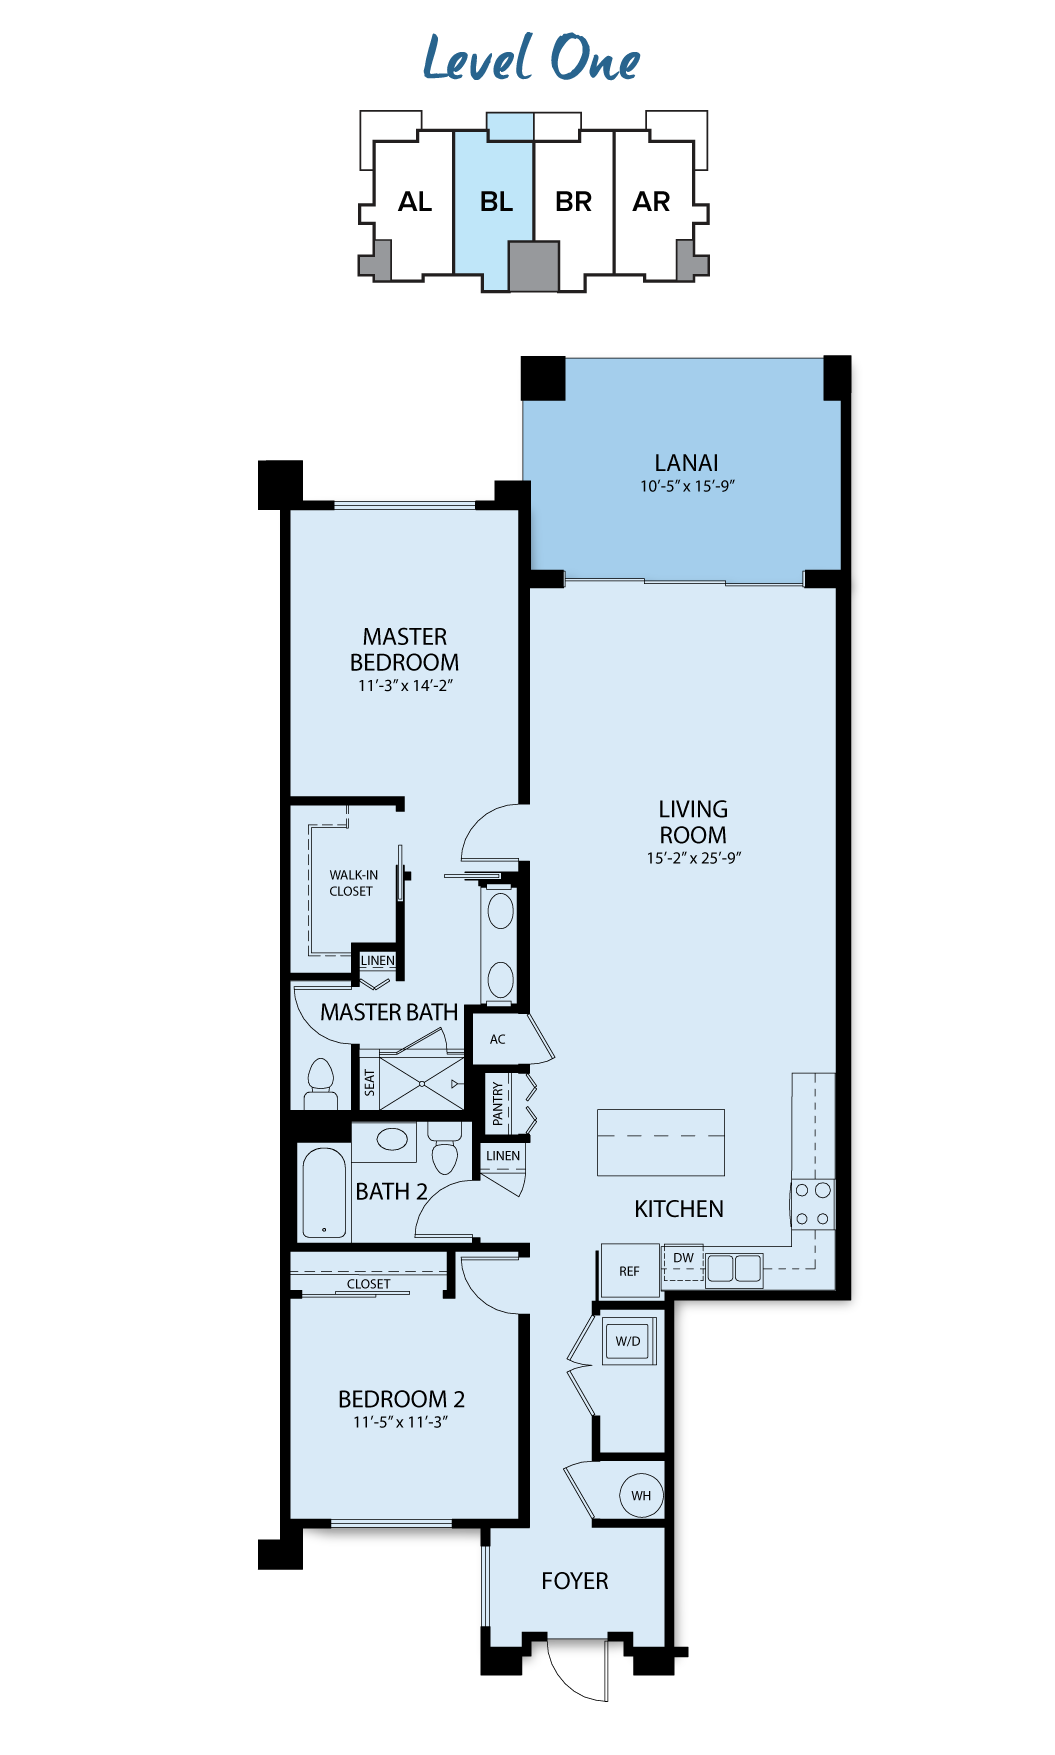 2 to 3 bedroom and 2 to 3 5 bathroom multi family homes for sale